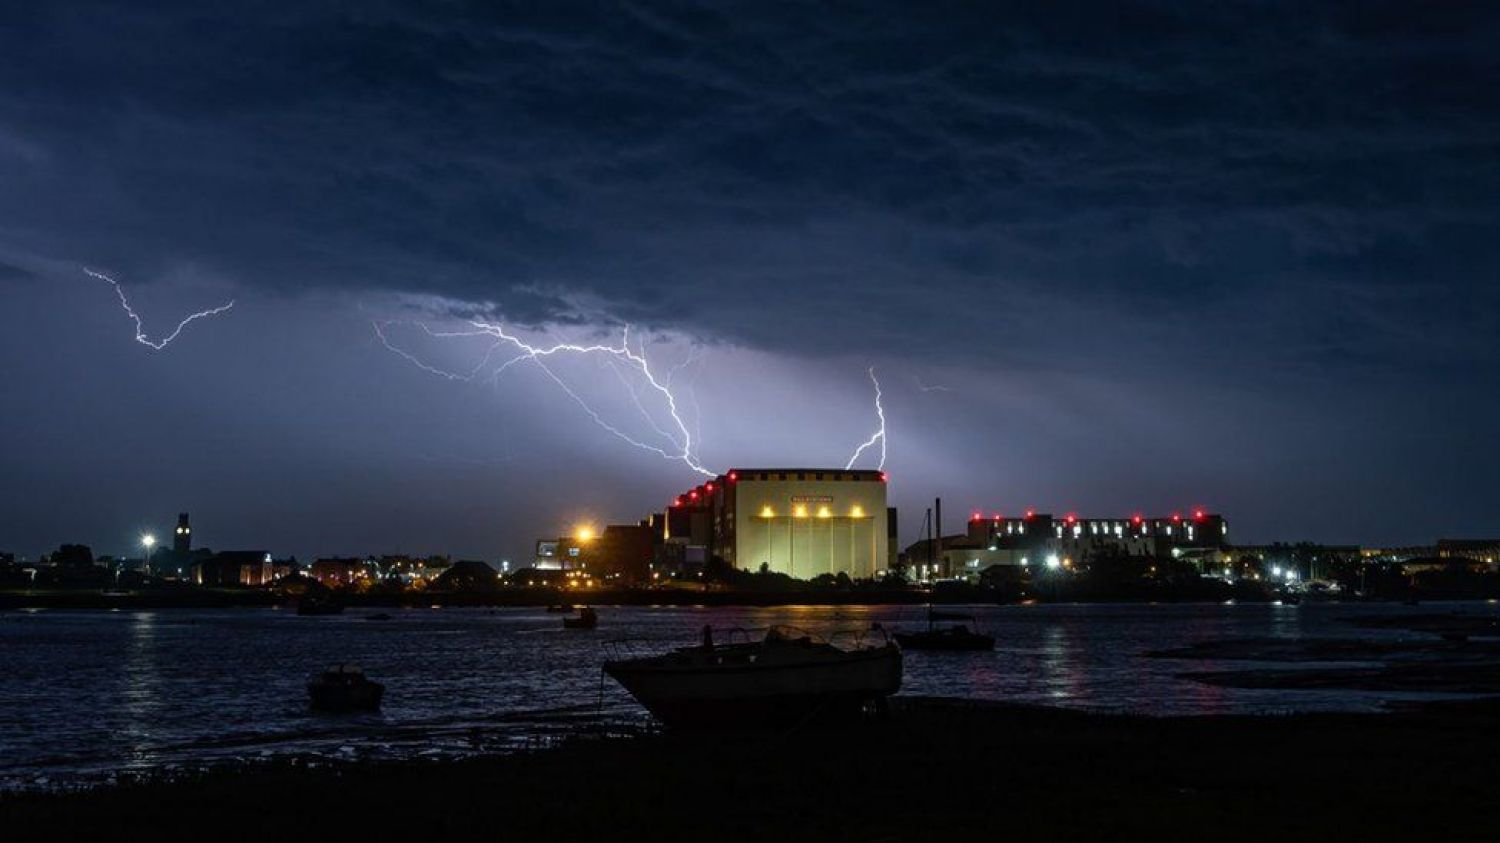 Lightening and thunderstorms causes chaos over UK - more to follow....